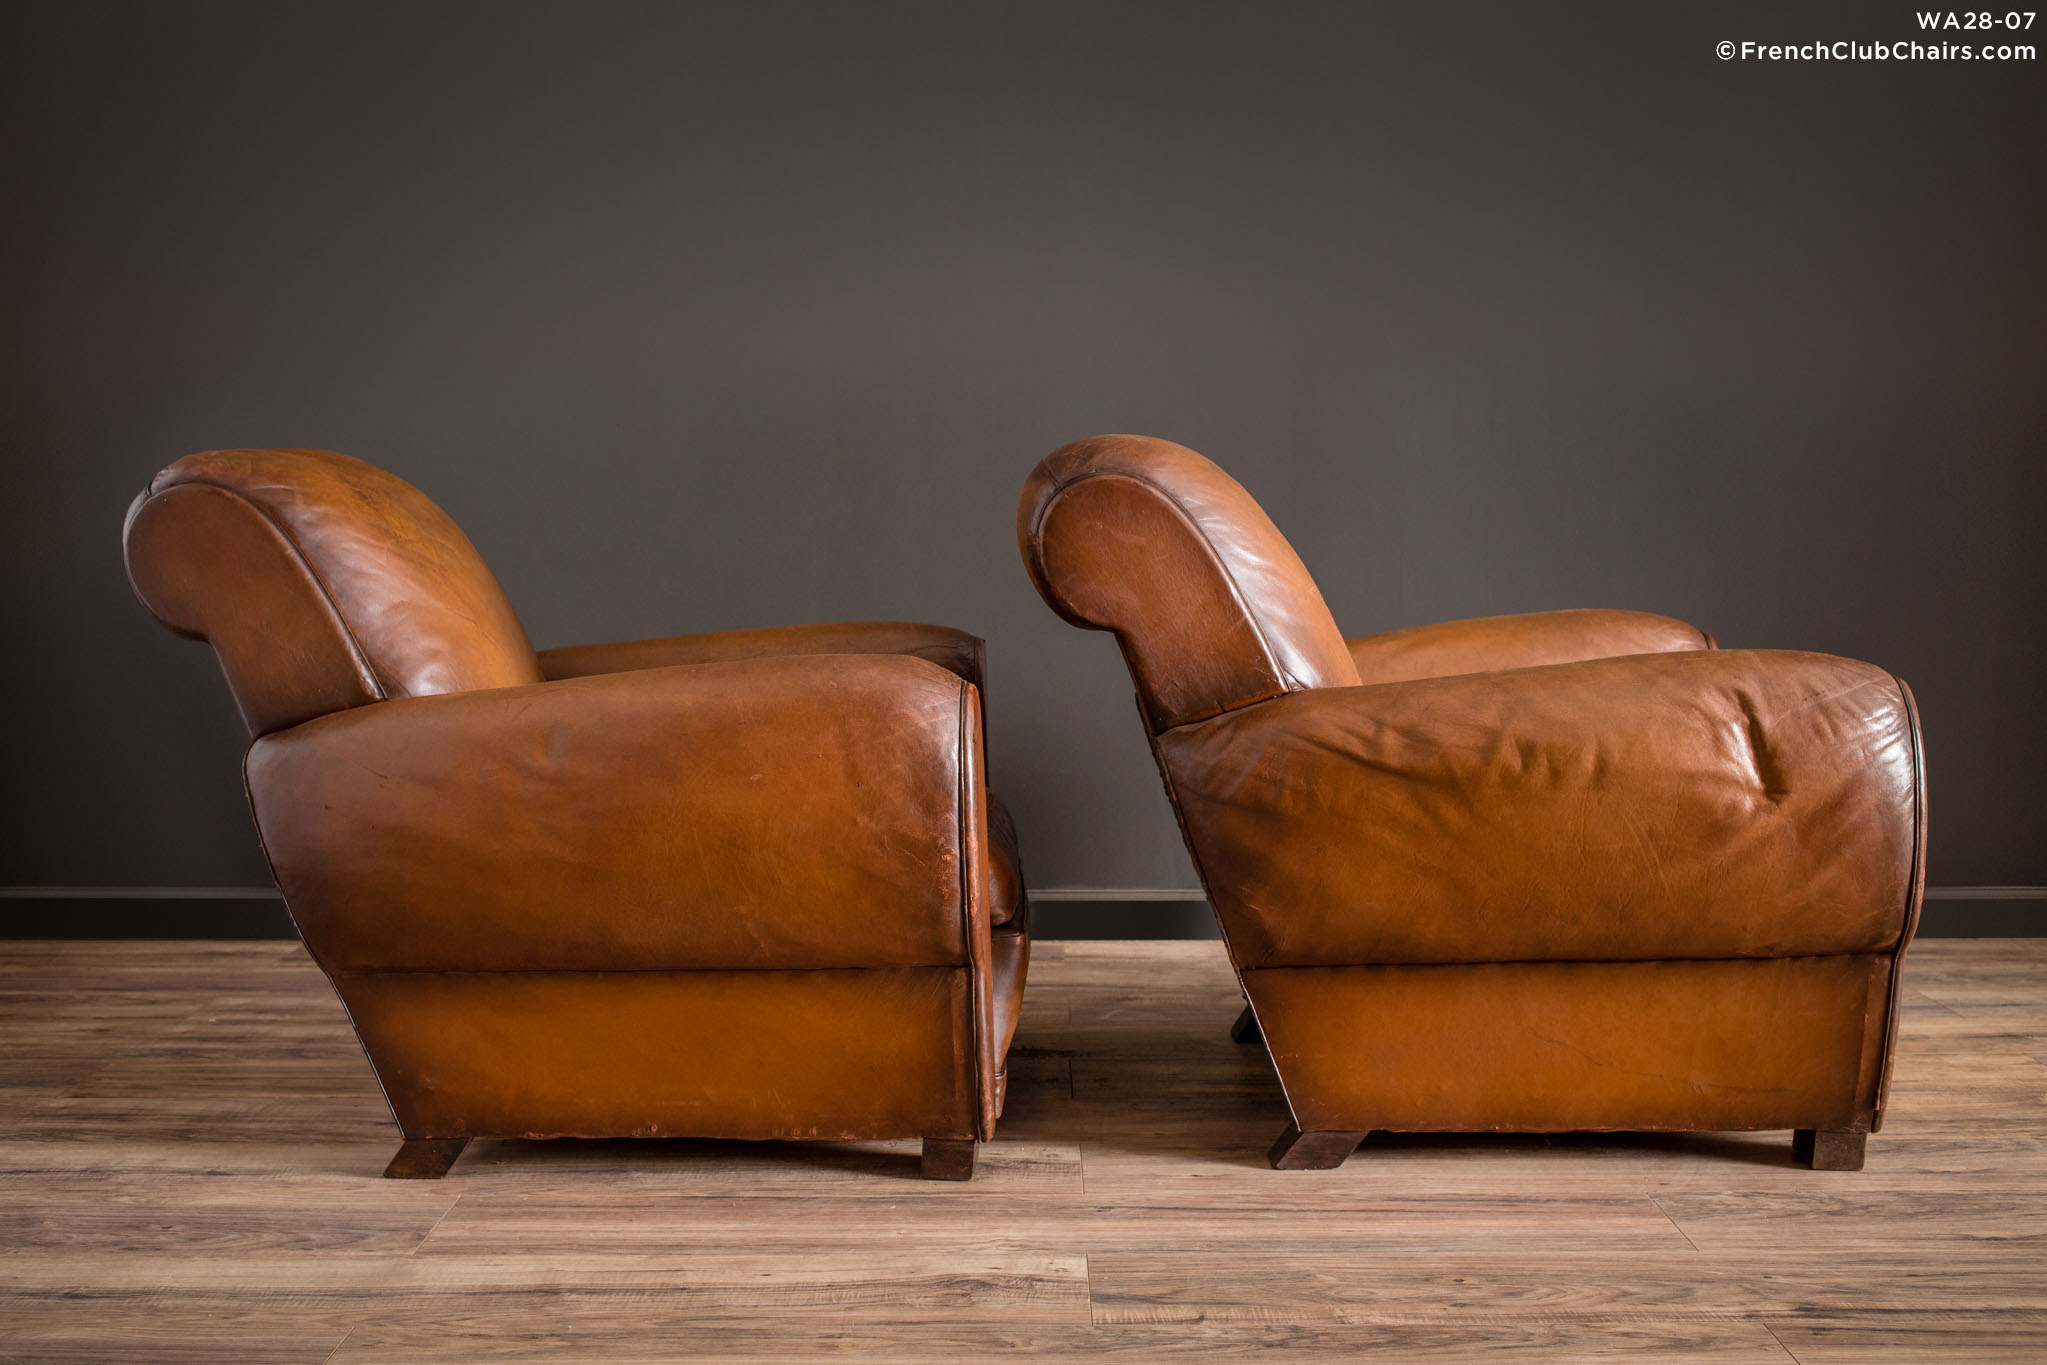 WA_28-07_La_Manche_Rollback_Pair_R_3RT1-williams-antiks-leather-french-club-chair-wa_fcccom